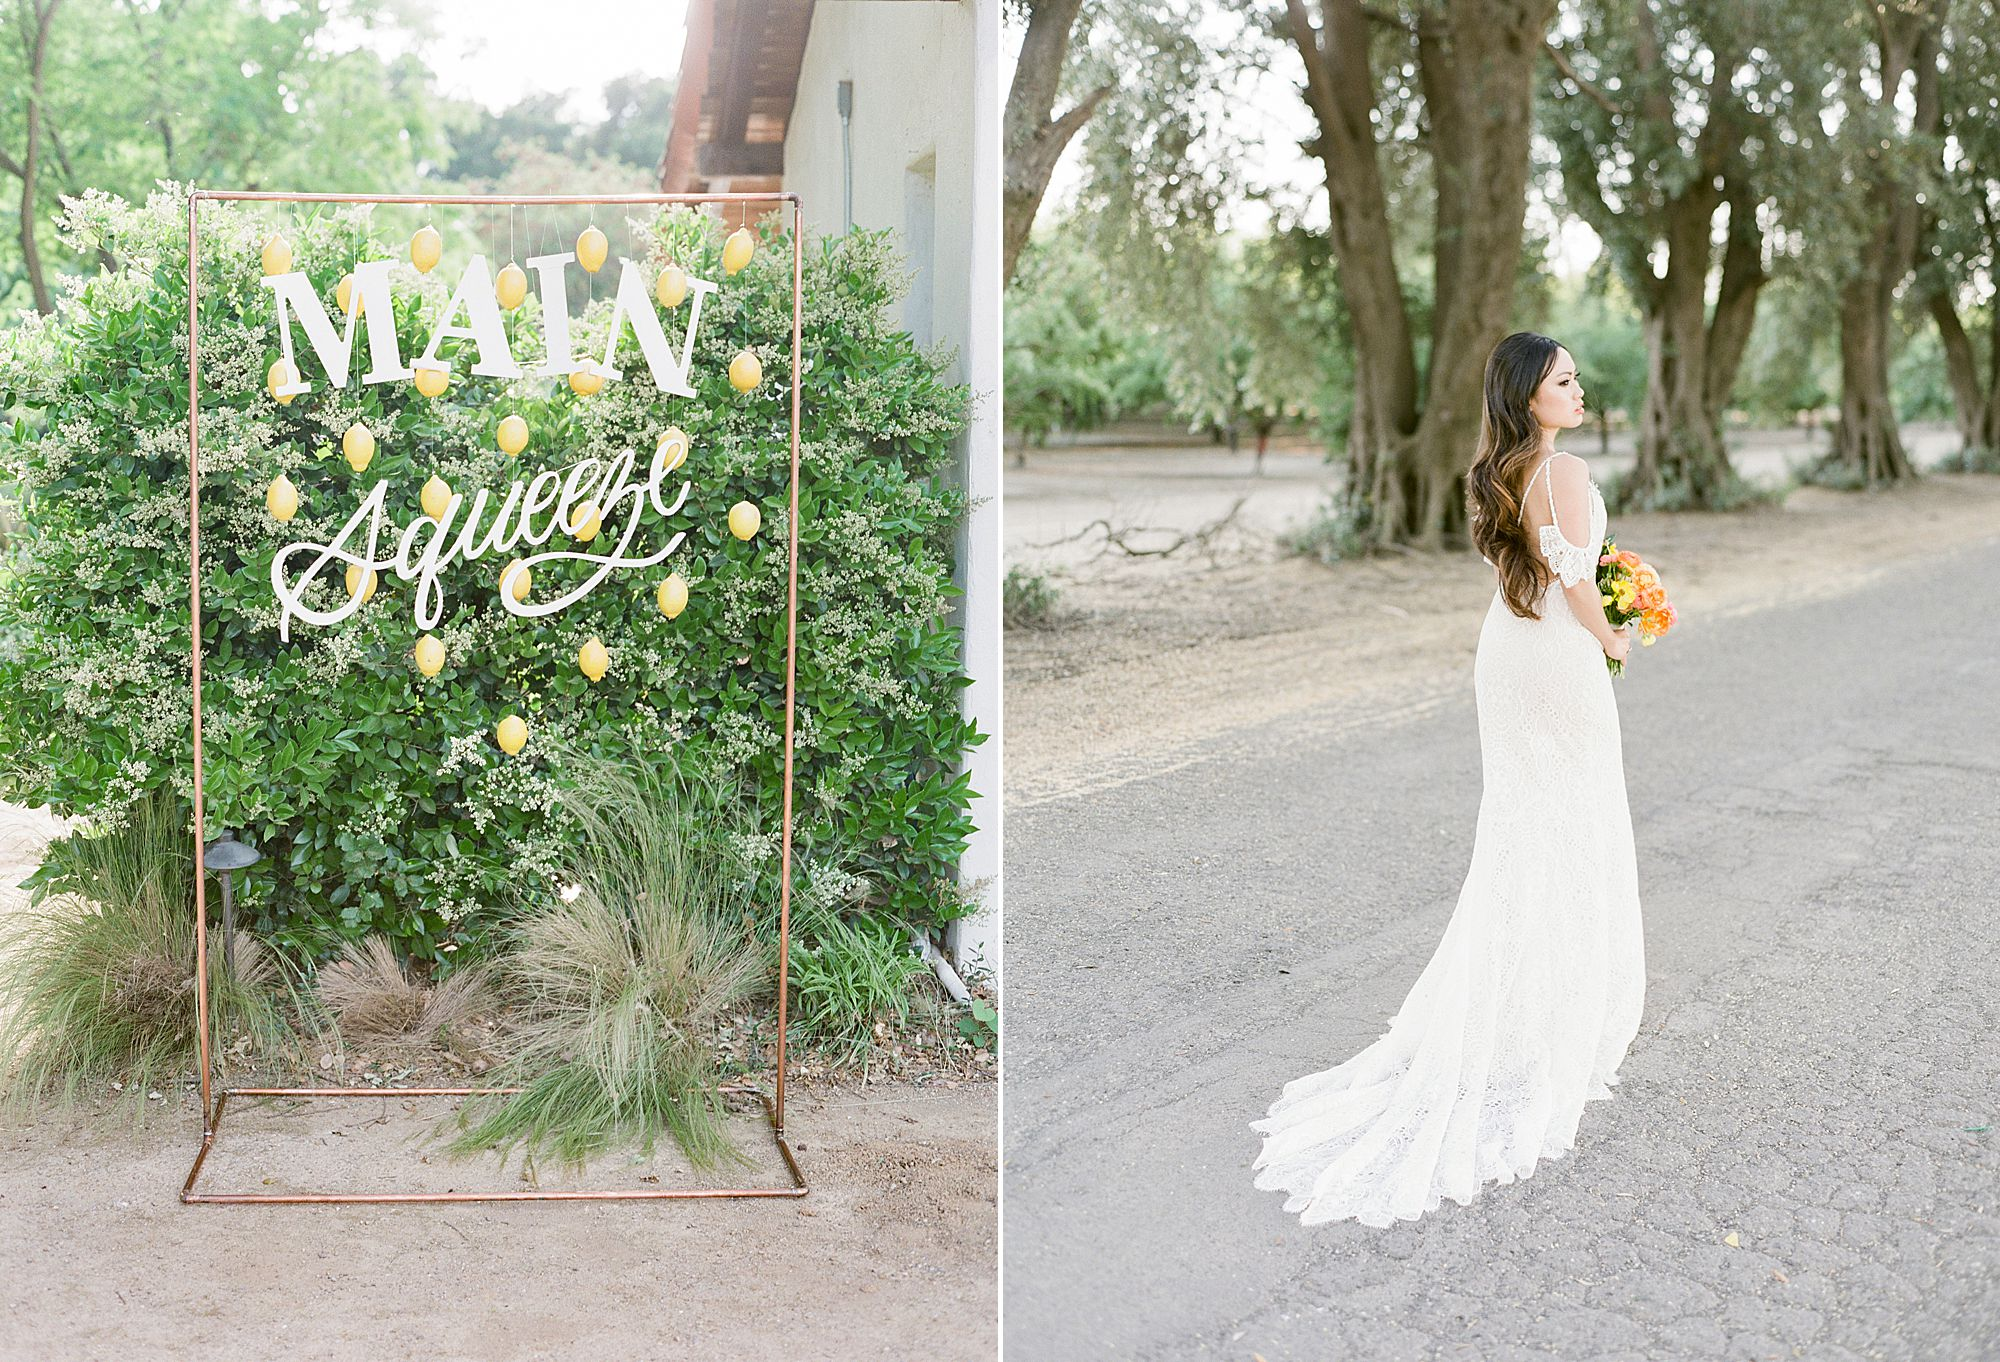 Italian Wedding Inspiration at The Maples Wedding & Event Center - Featured on Wedding Chicks - Ashley Baumgartner - Sacramento Wedding Phtoographer_0038.jpg